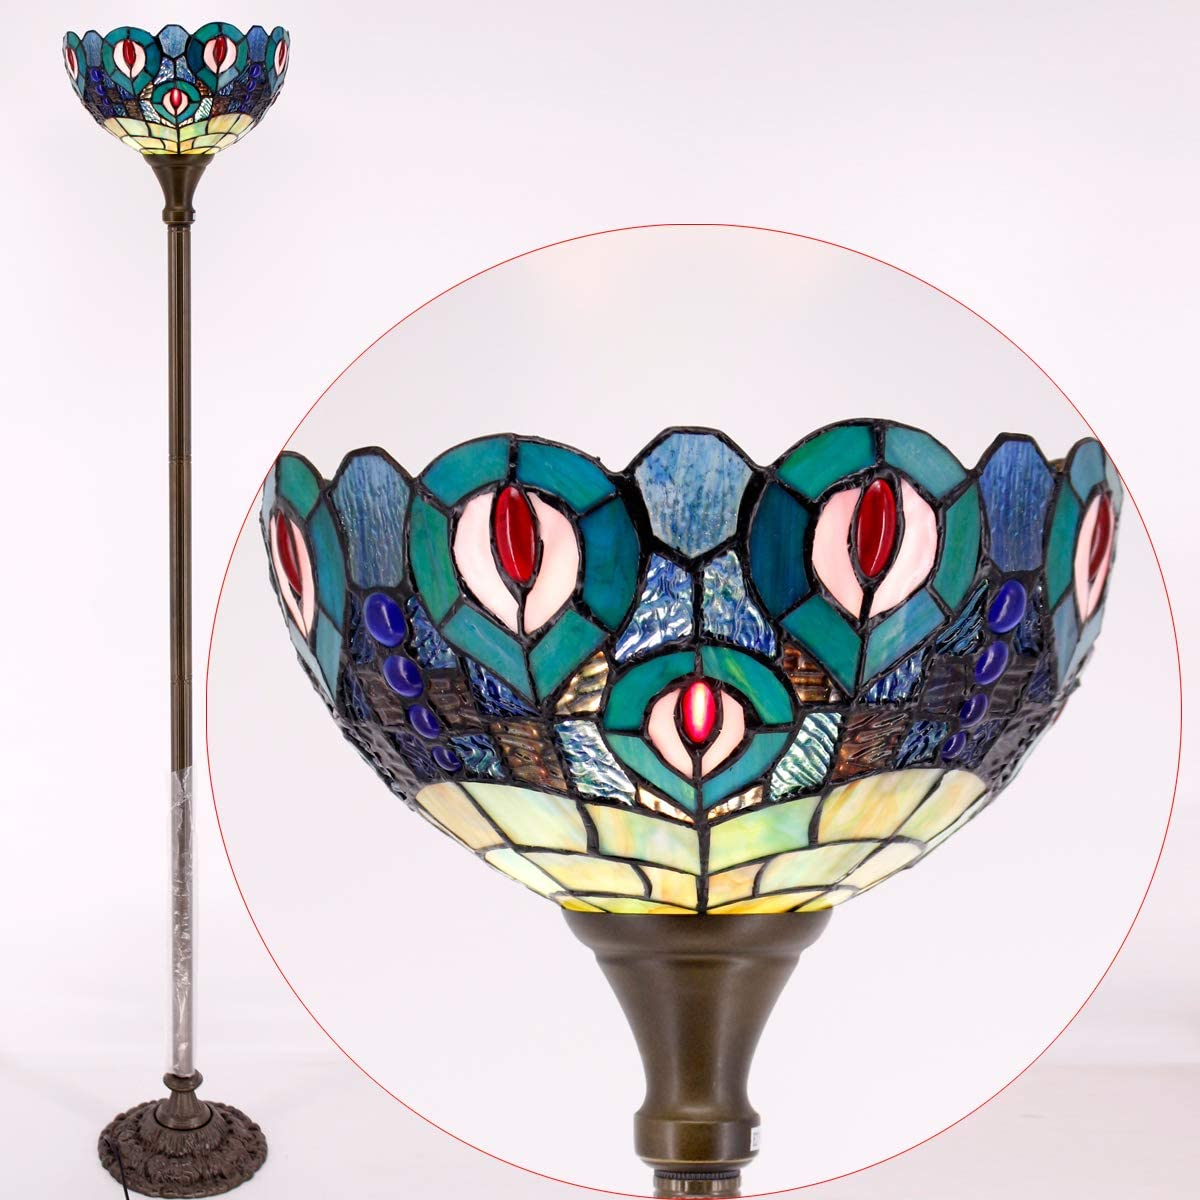 Tiffany Lamps Stained Glass Lotus Flower Table Desk Reading Lamp with Flexible Arm, W7.5 H21 Inch for Living Room Bedroom Bookcase Dresser Coffee Table Beside Reading